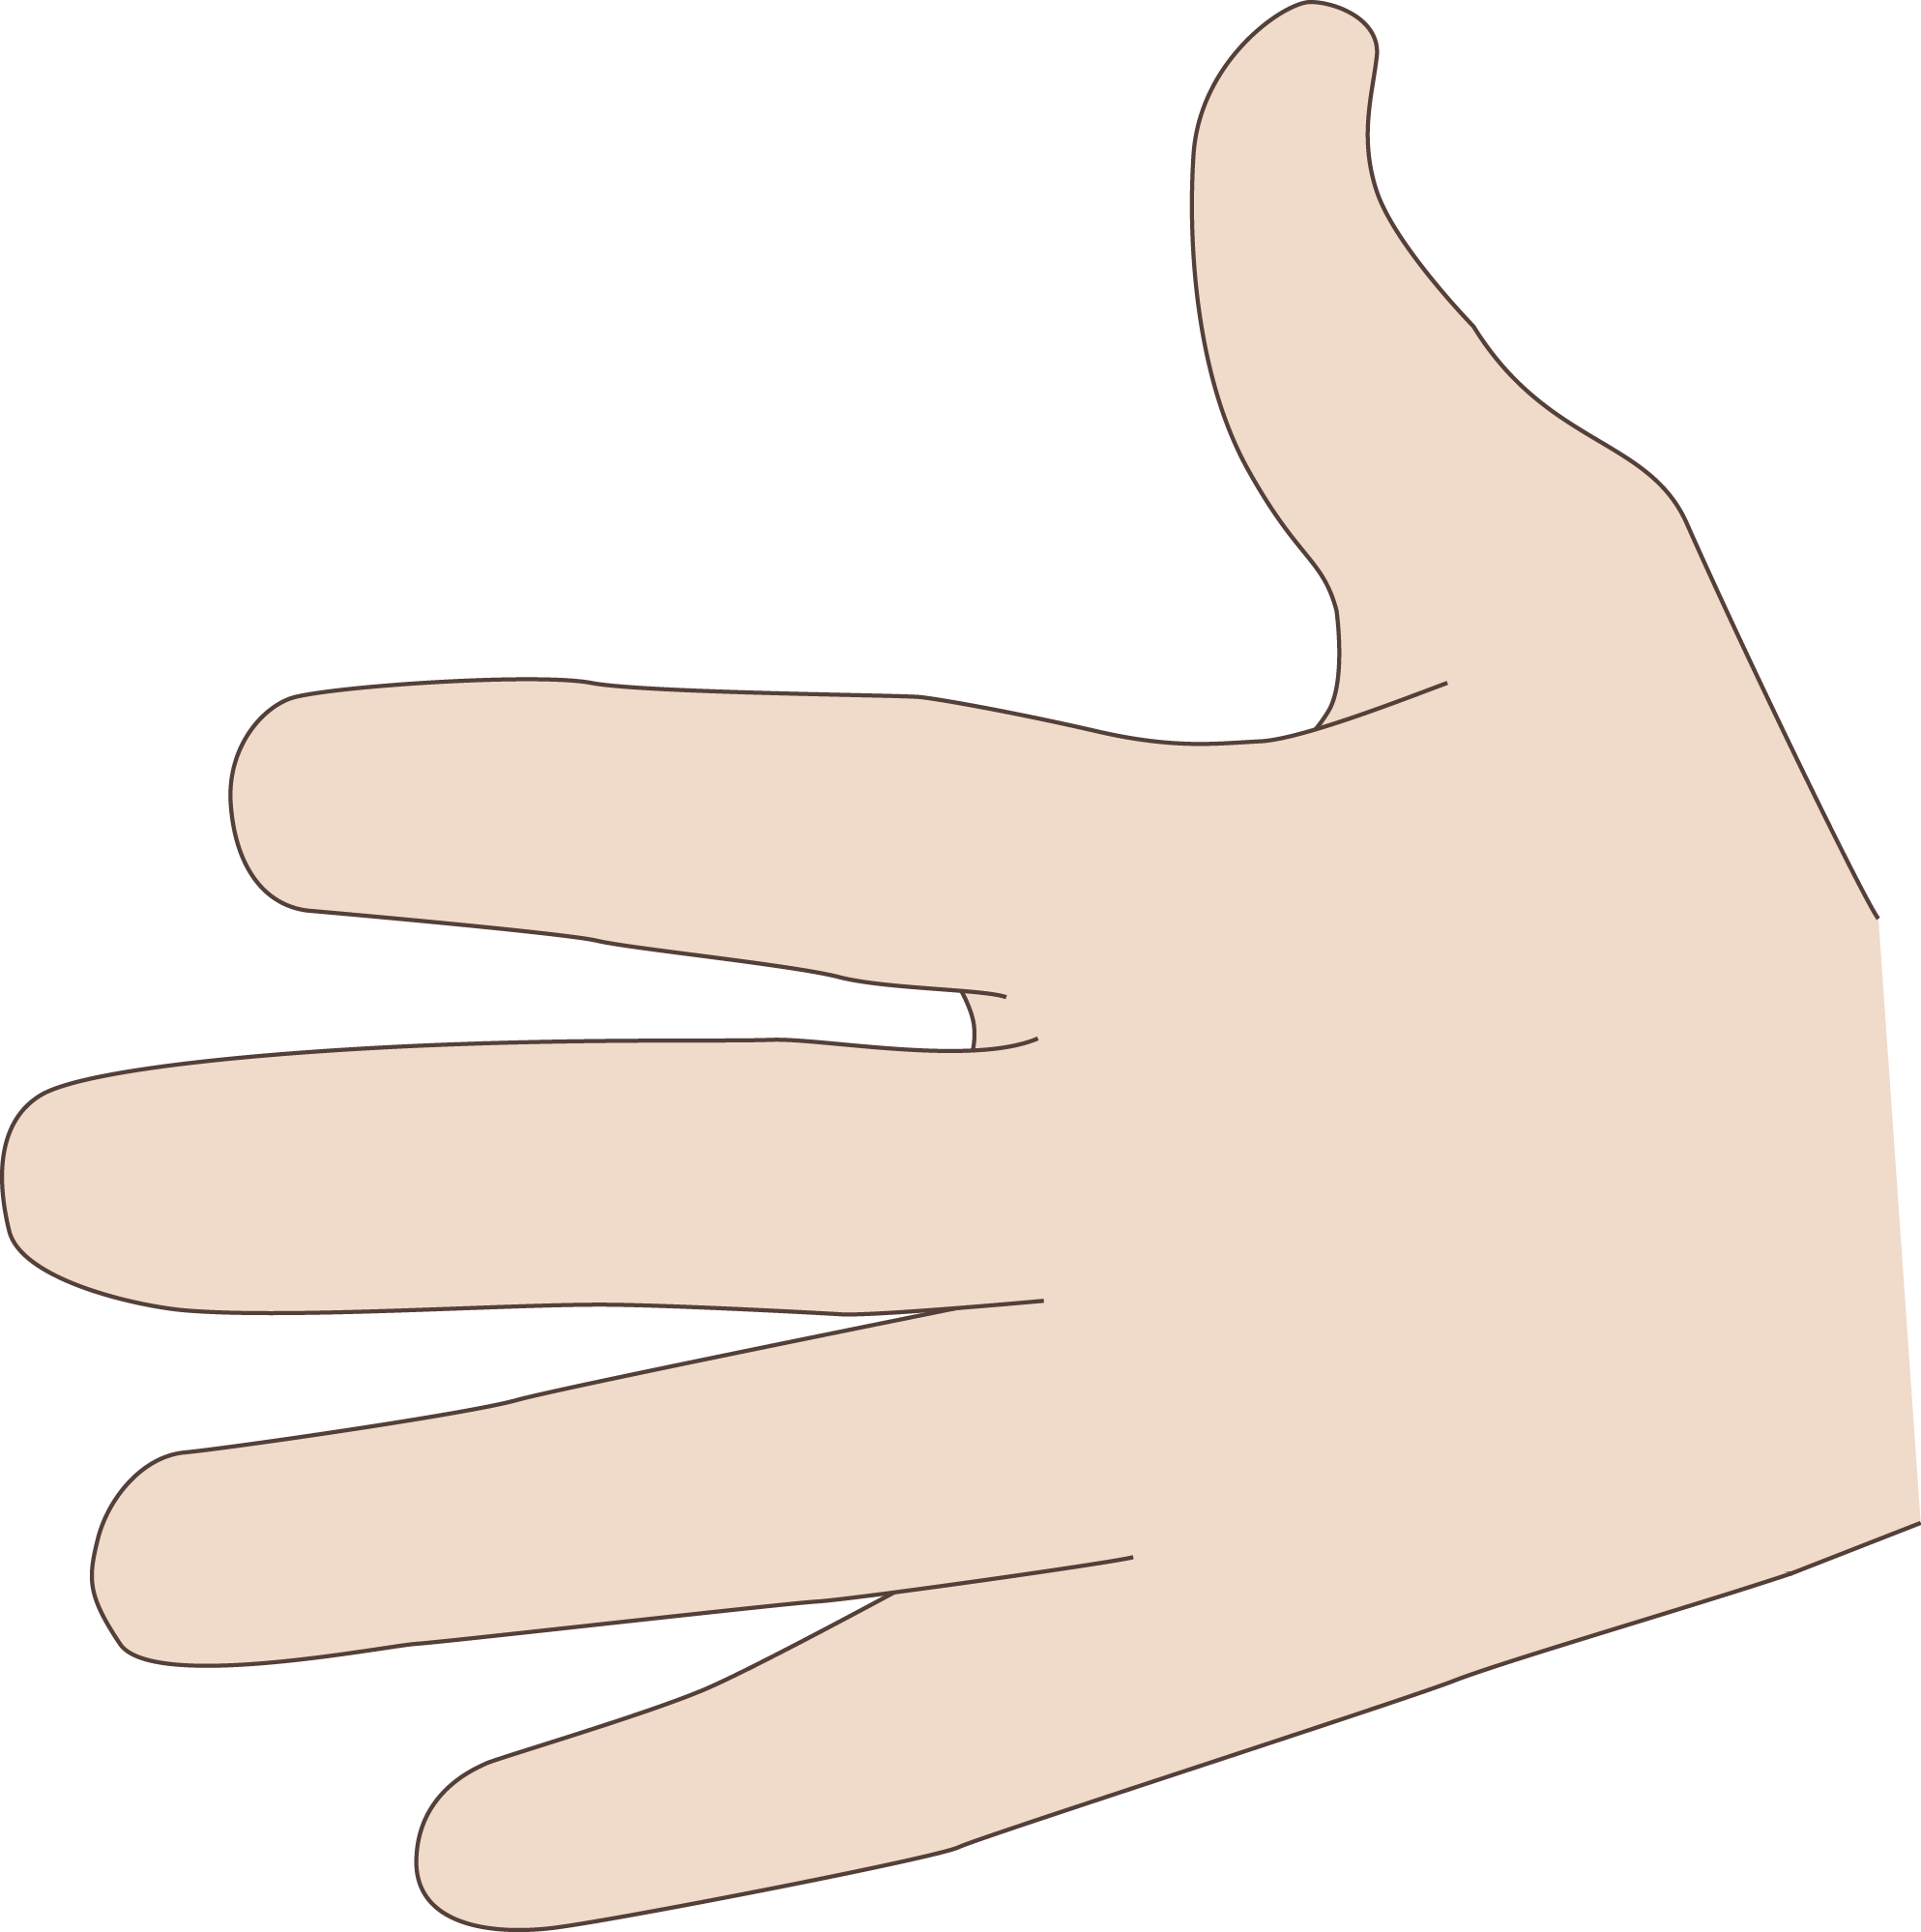 Handshake clipart body language. Coding manual all fingers